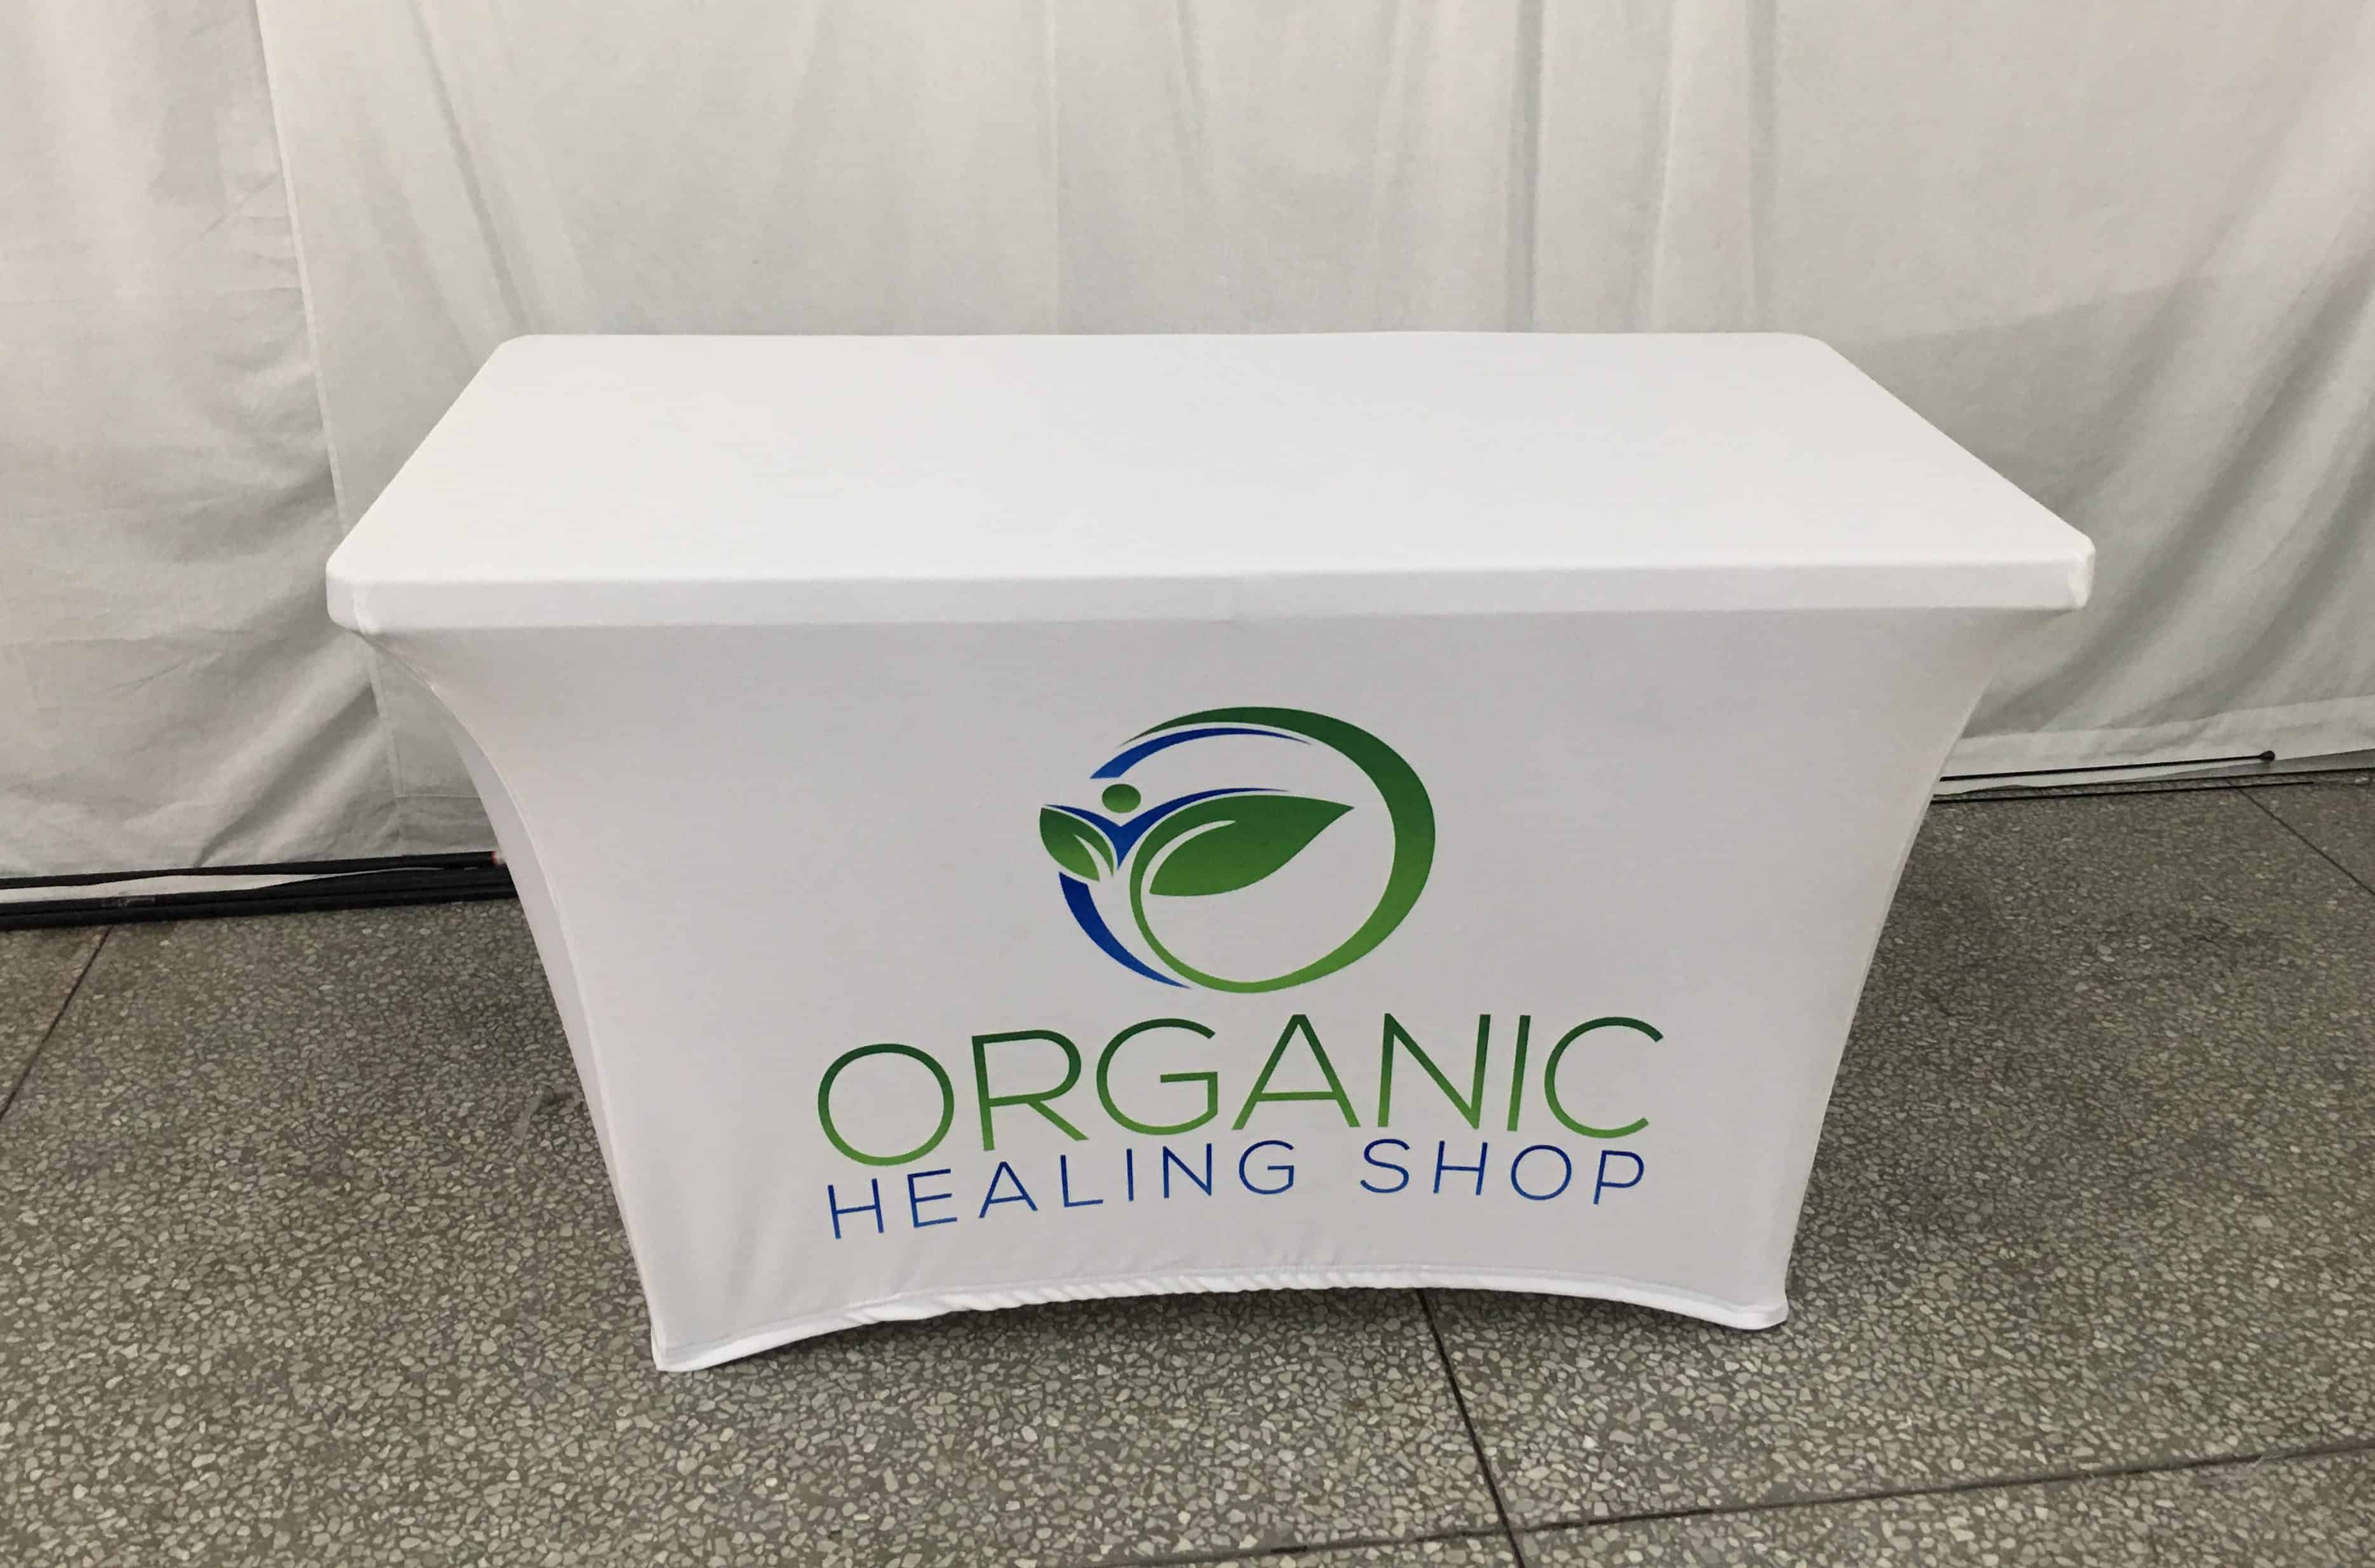 Organic Healing Shop Table Cover